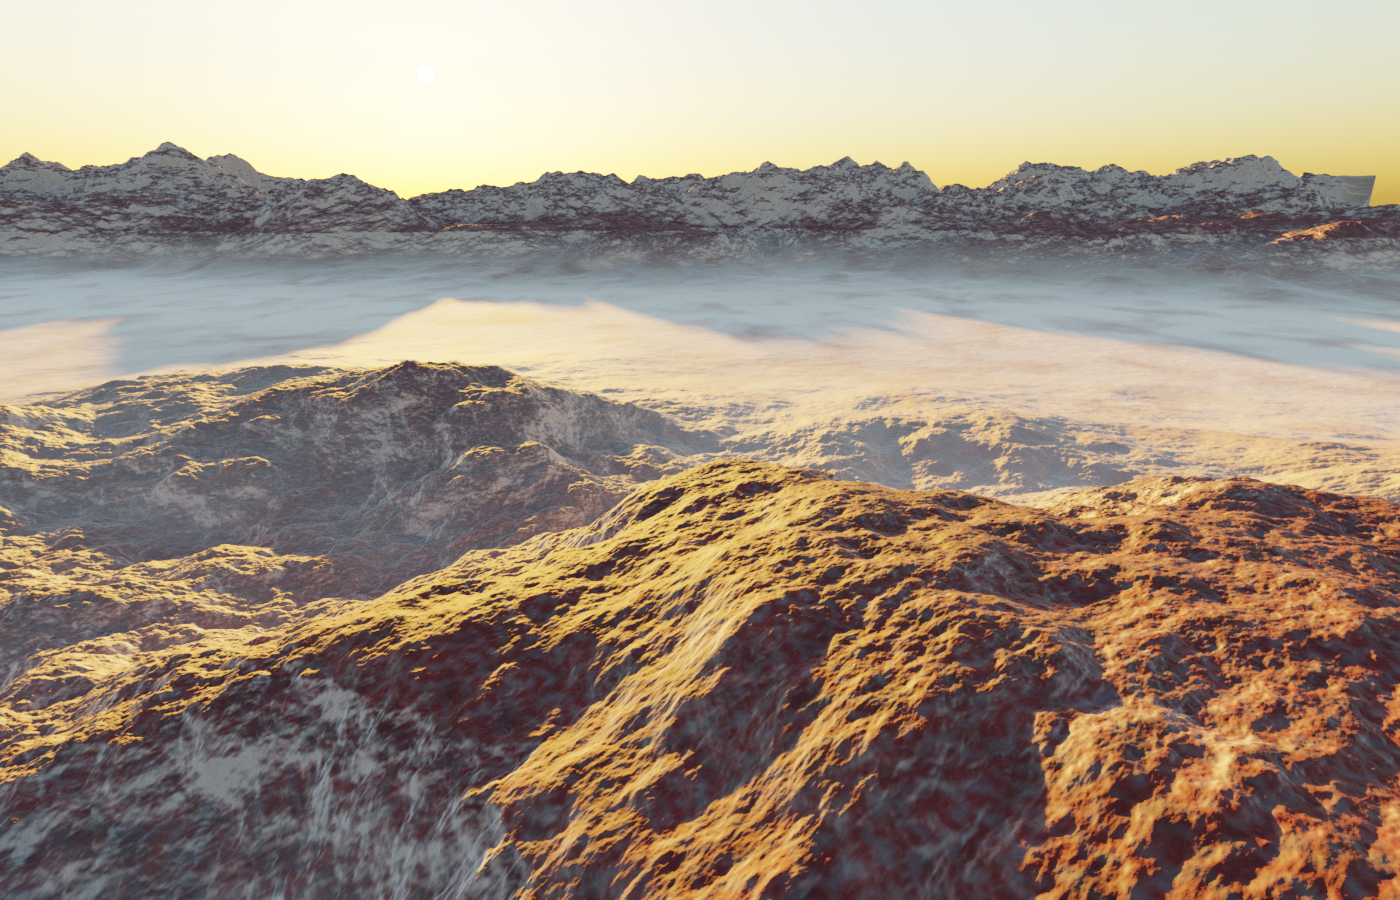 Procedural Cycles Landscape preview image 1